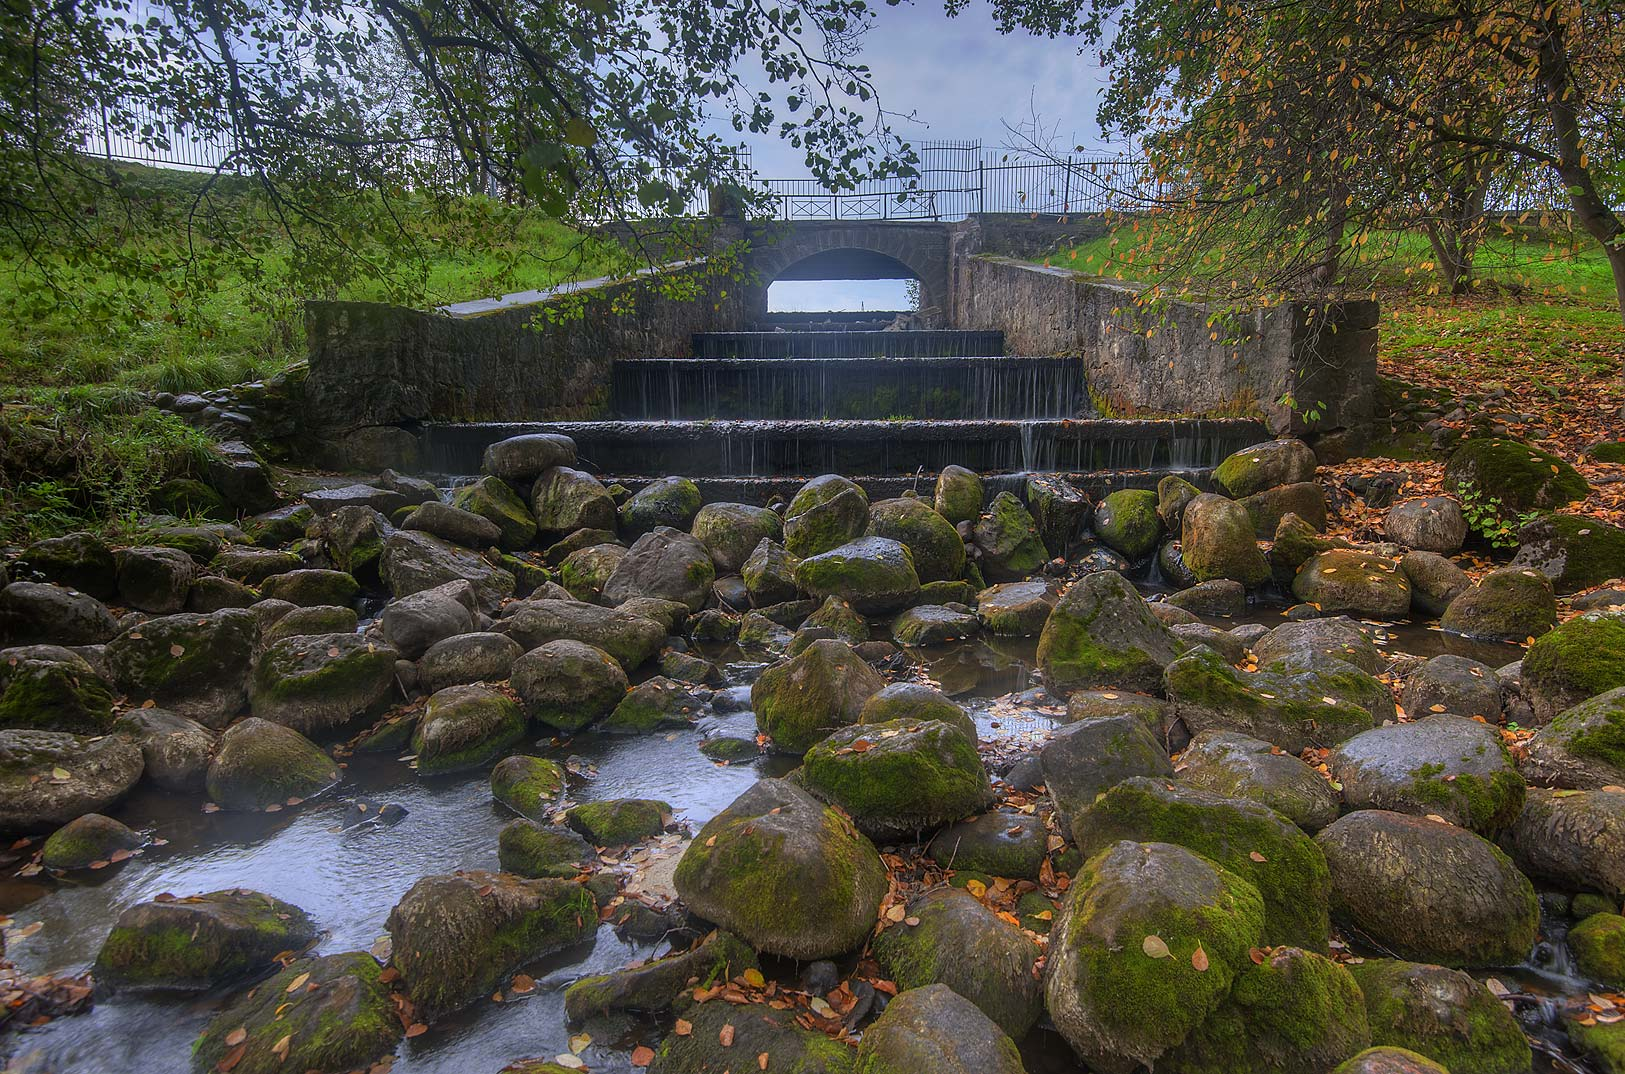 Spillway of Krasny Pond in the park. Oranienbaum...a suburb of St.Petersburg, Russia